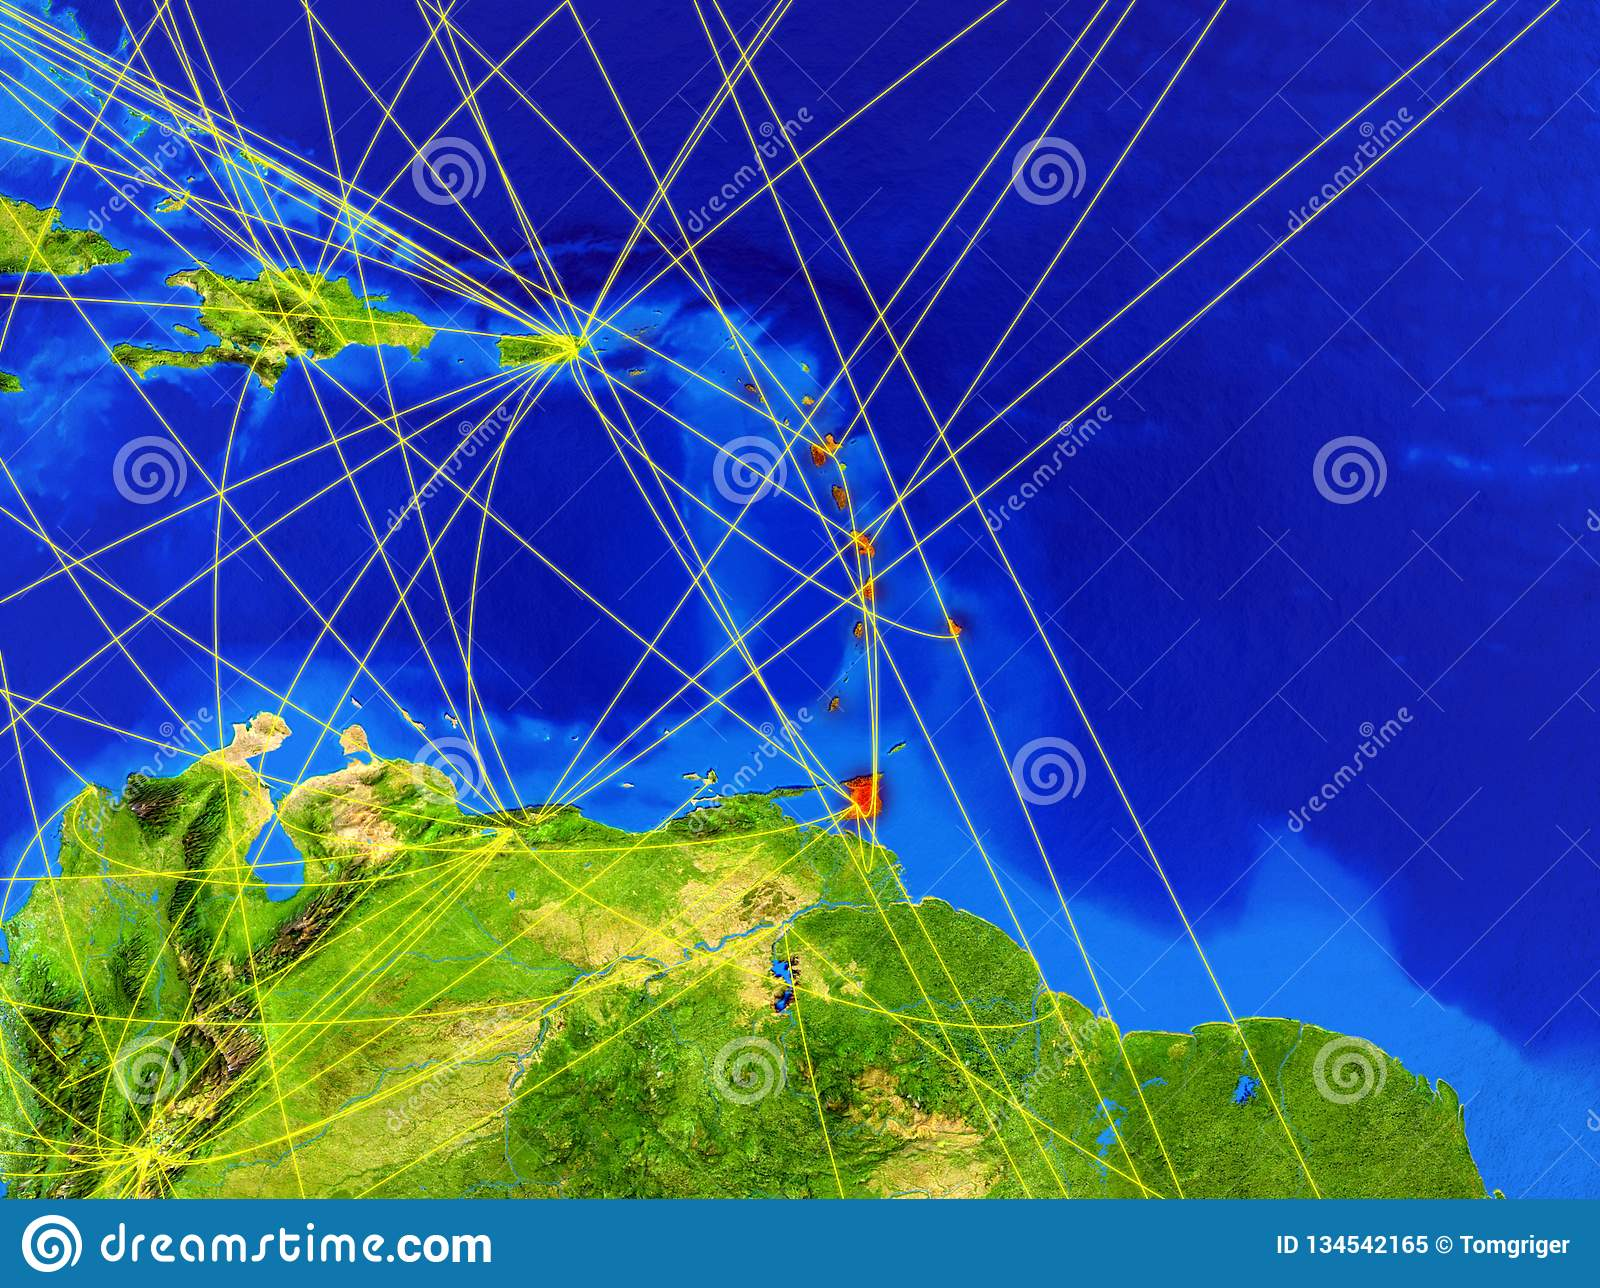 Caribbean on Earth with network